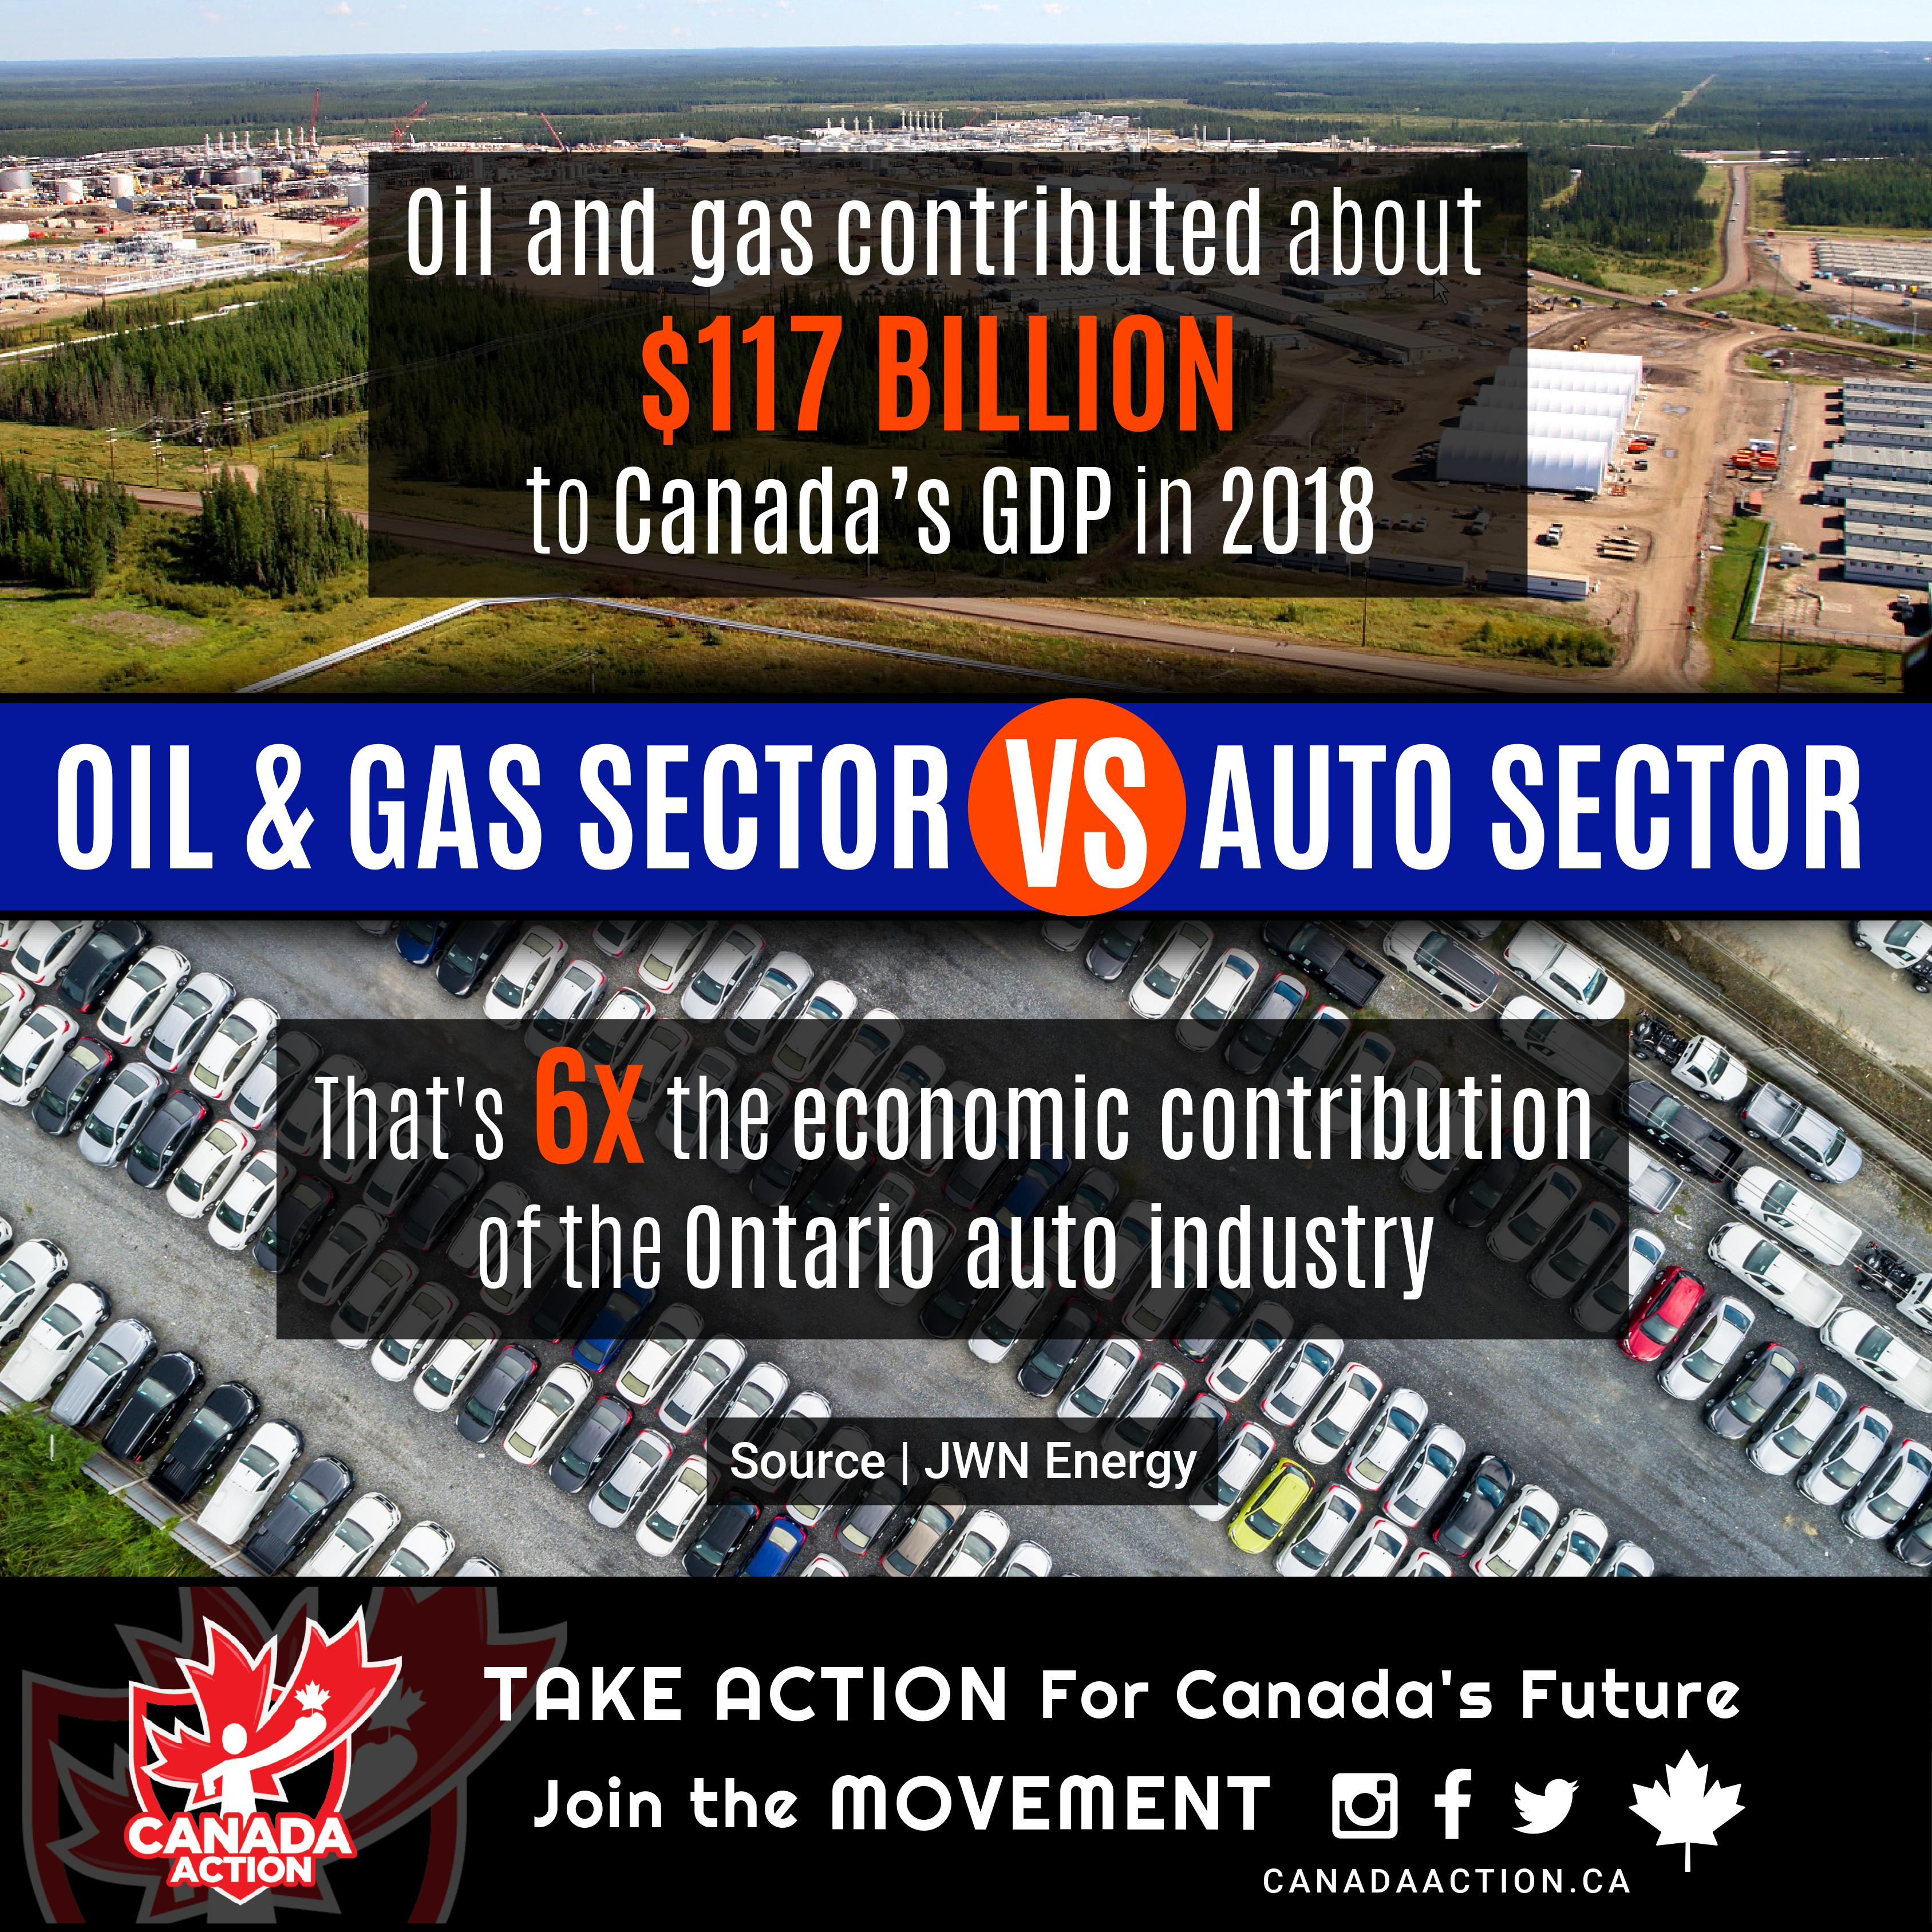 Oil and Gas vs. Auto Sector - GDP Contribution for Canada